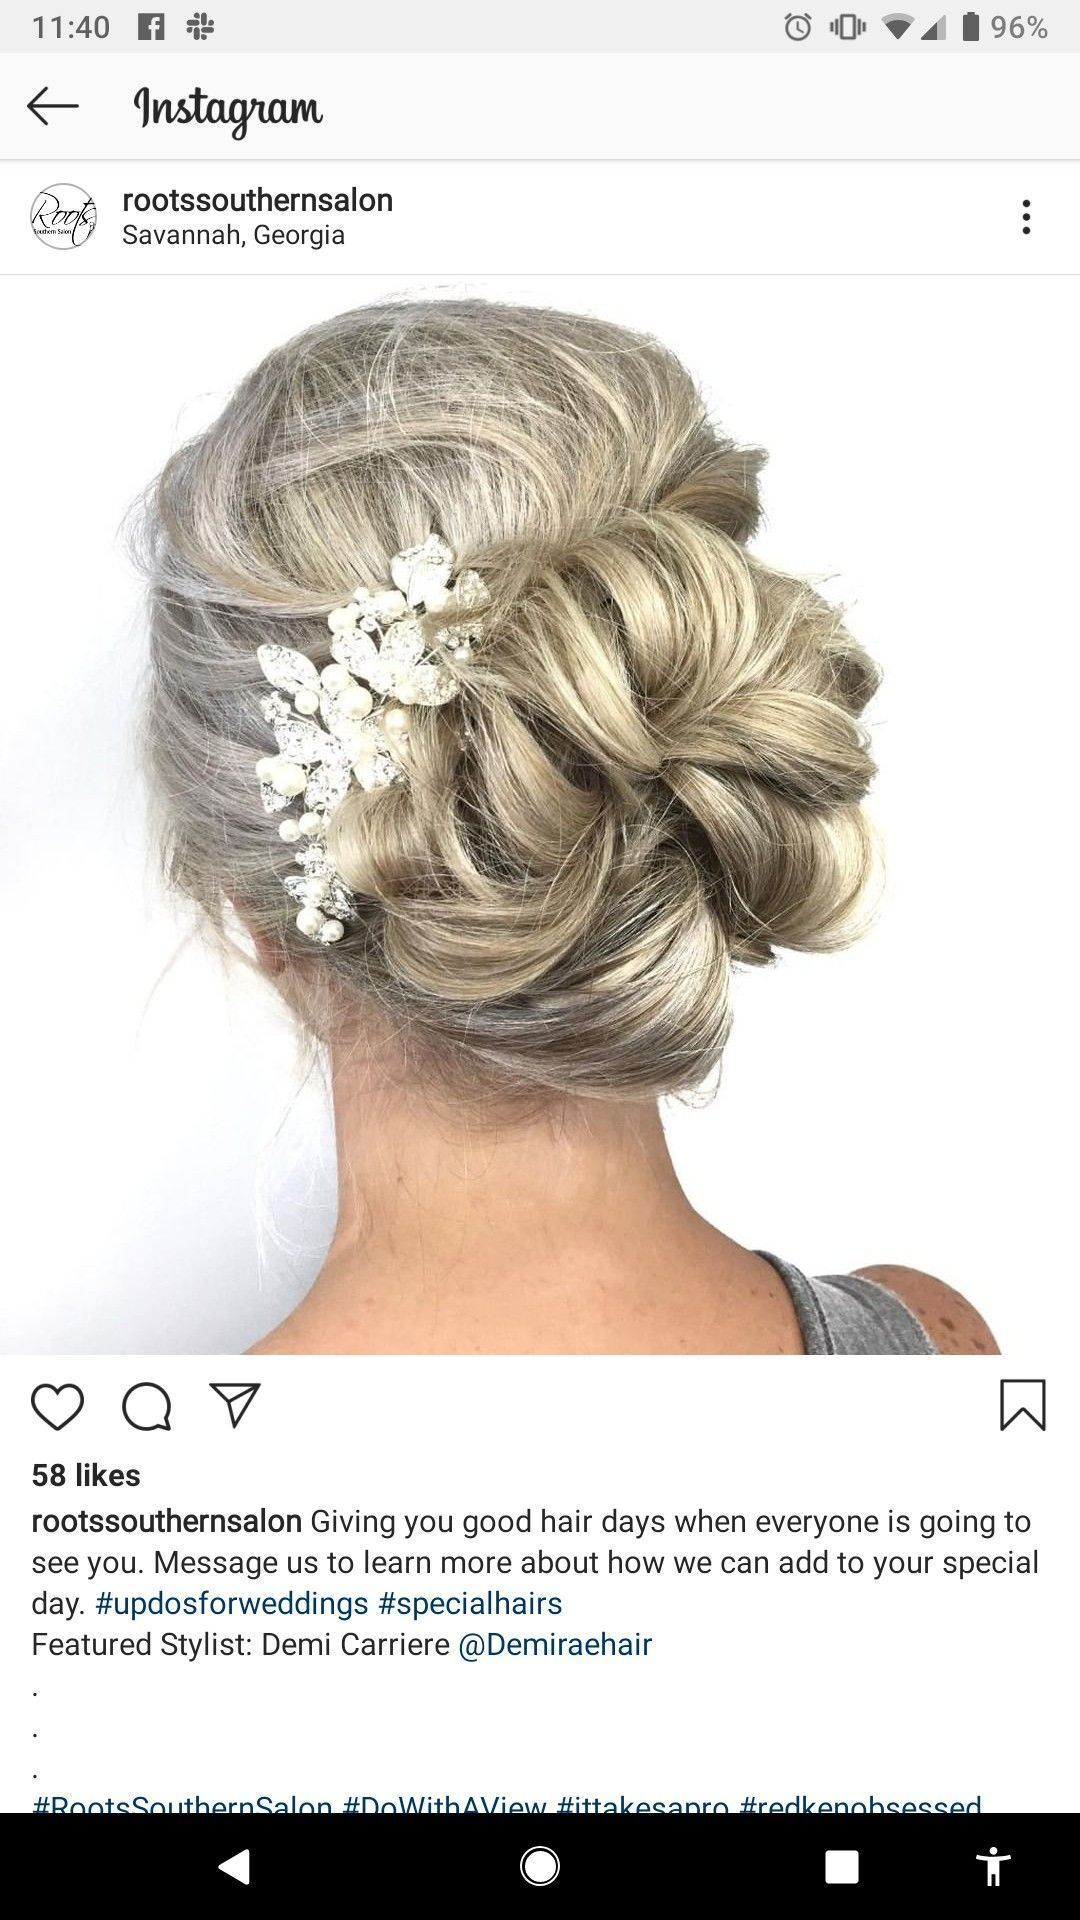 Wedding day hair COLOR.  #naturalashblonde This one is more of a natural ash blonde, but with a touch more silver. What do you think, Sissy? #naturalashblonde Wedding day hair COLOR.  #naturalashblonde This one is more of a natural ash blonde, but with a touch more silver. What do you think, Sissy? #ashblondebalayage Wedding day hair COLOR.  #naturalashblonde This one is more of a natural ash blonde, but with a touch more silver. What do you think, Sissy? #naturalashblonde Wedding day hair COLOR #lightashblonde